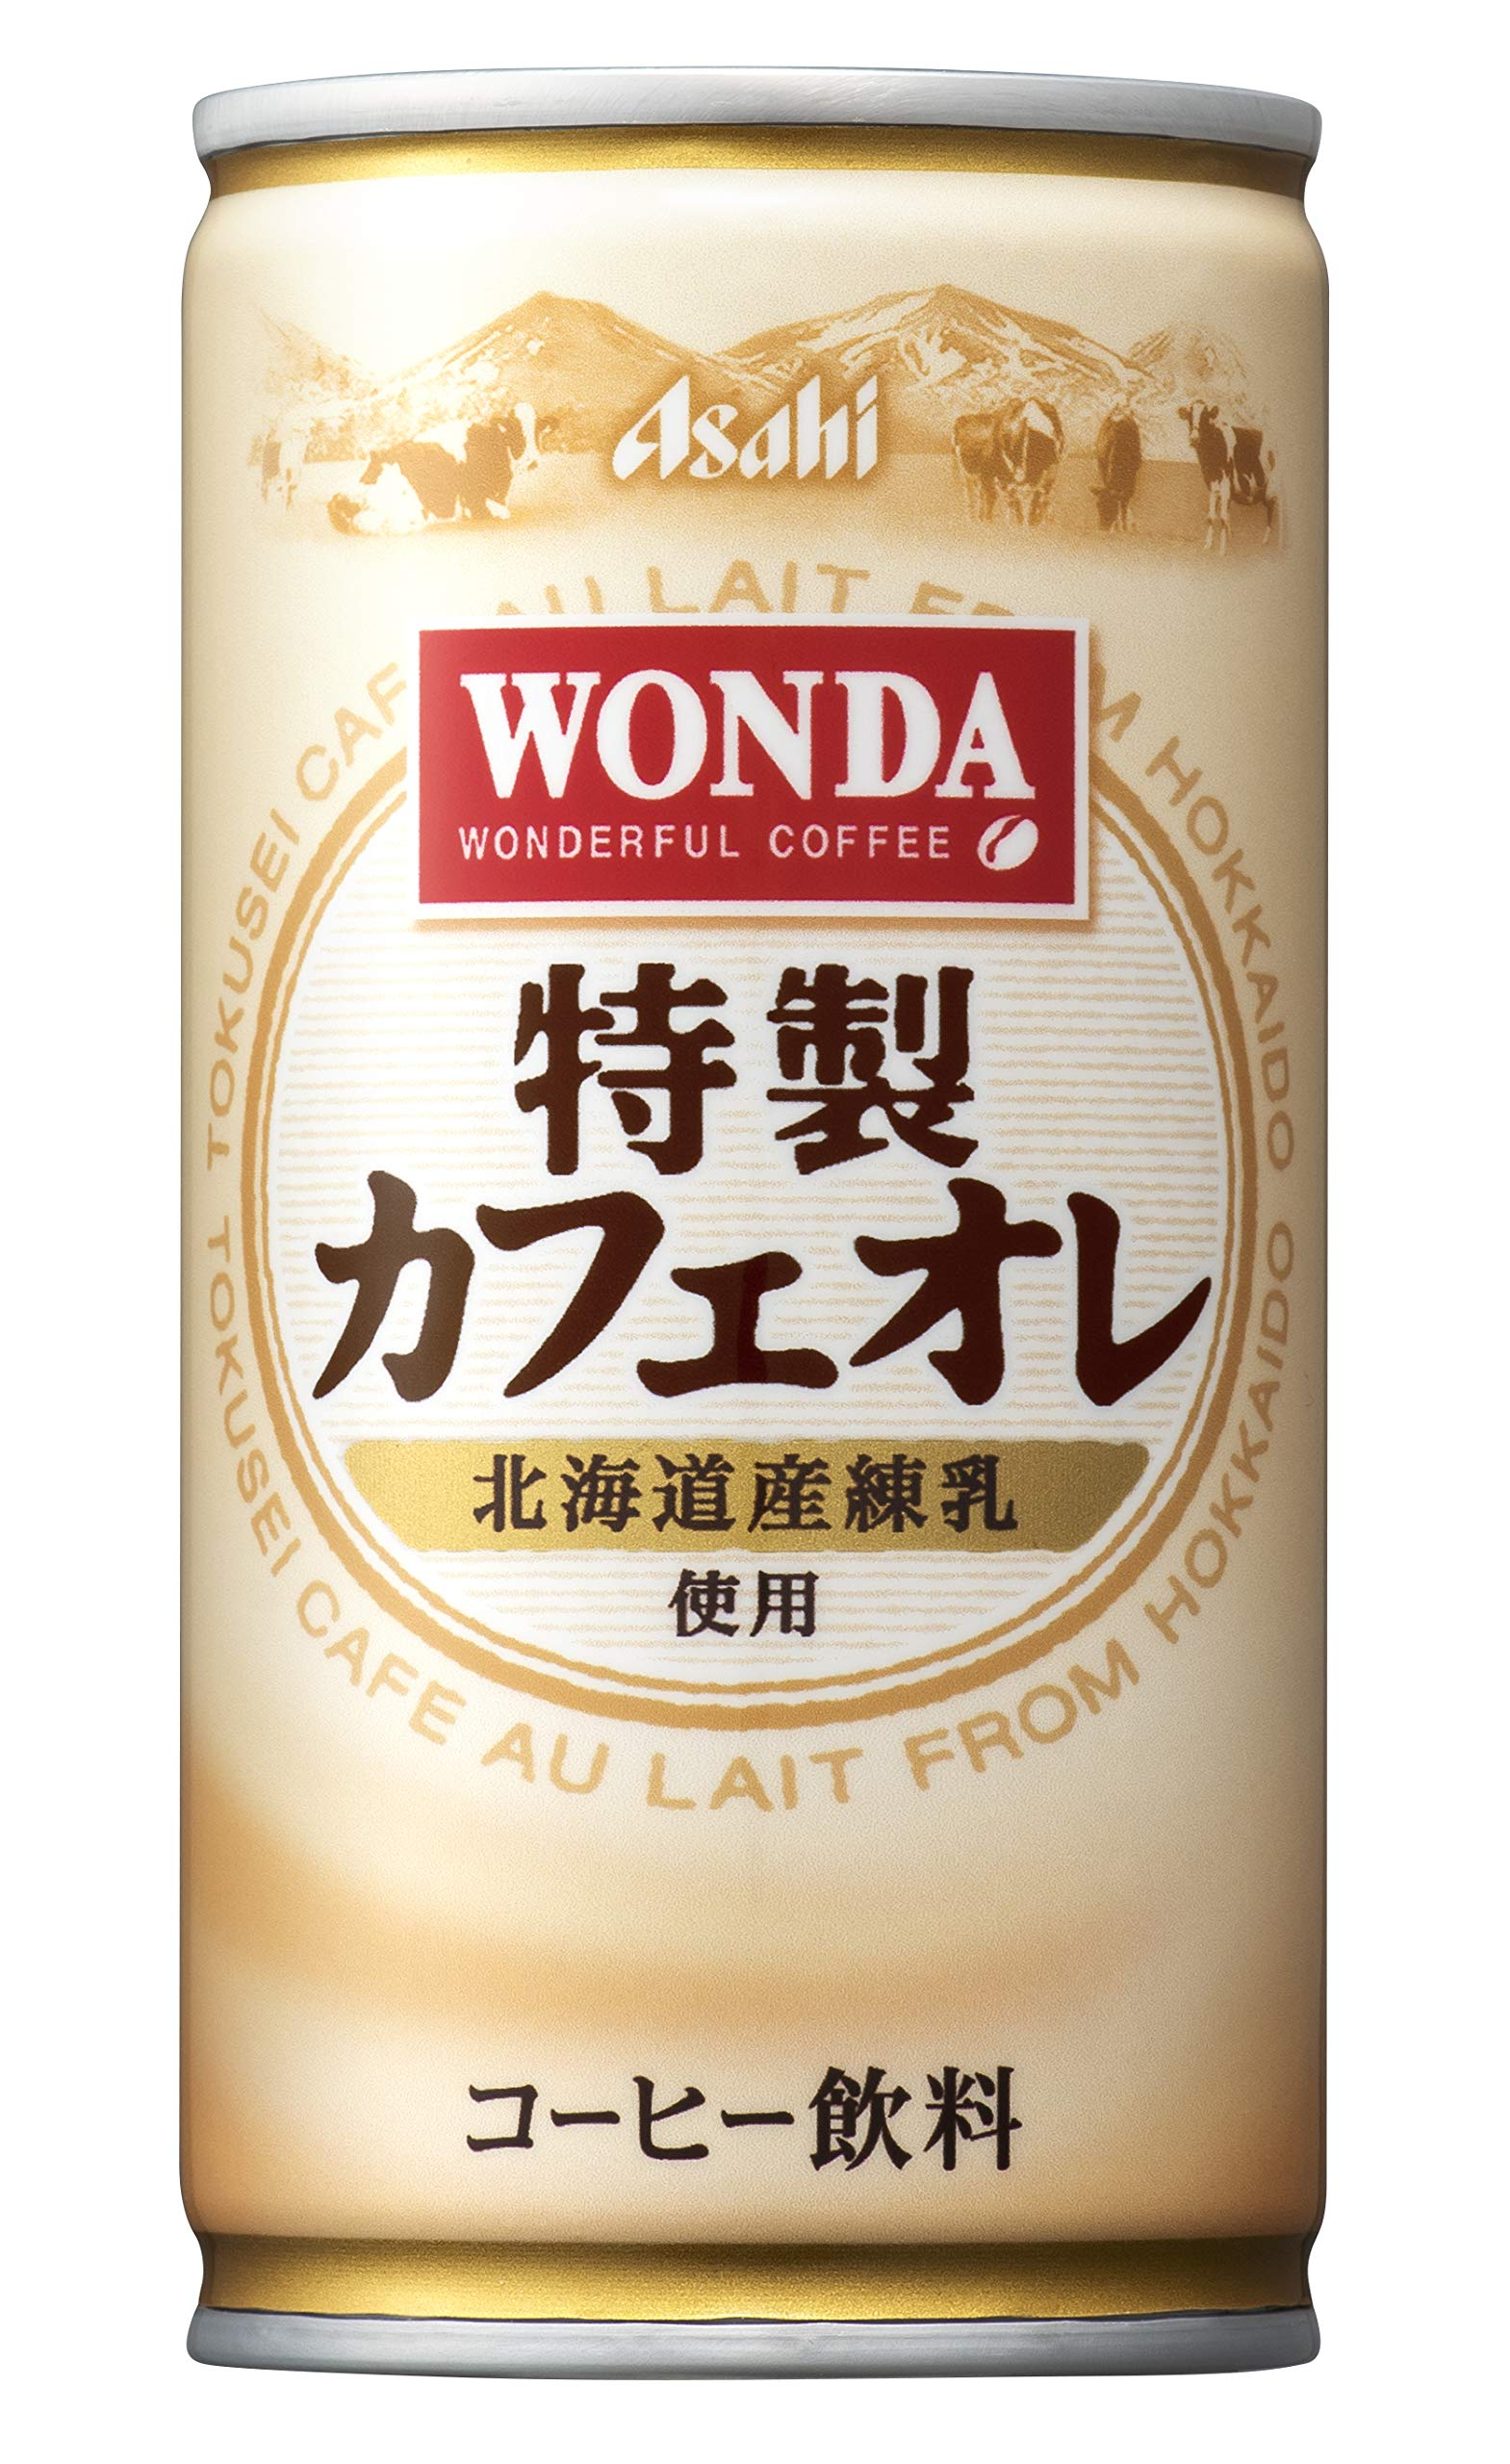 Asahi WONDA (Wanda) special cafe au lait 185g cans X30 pieces